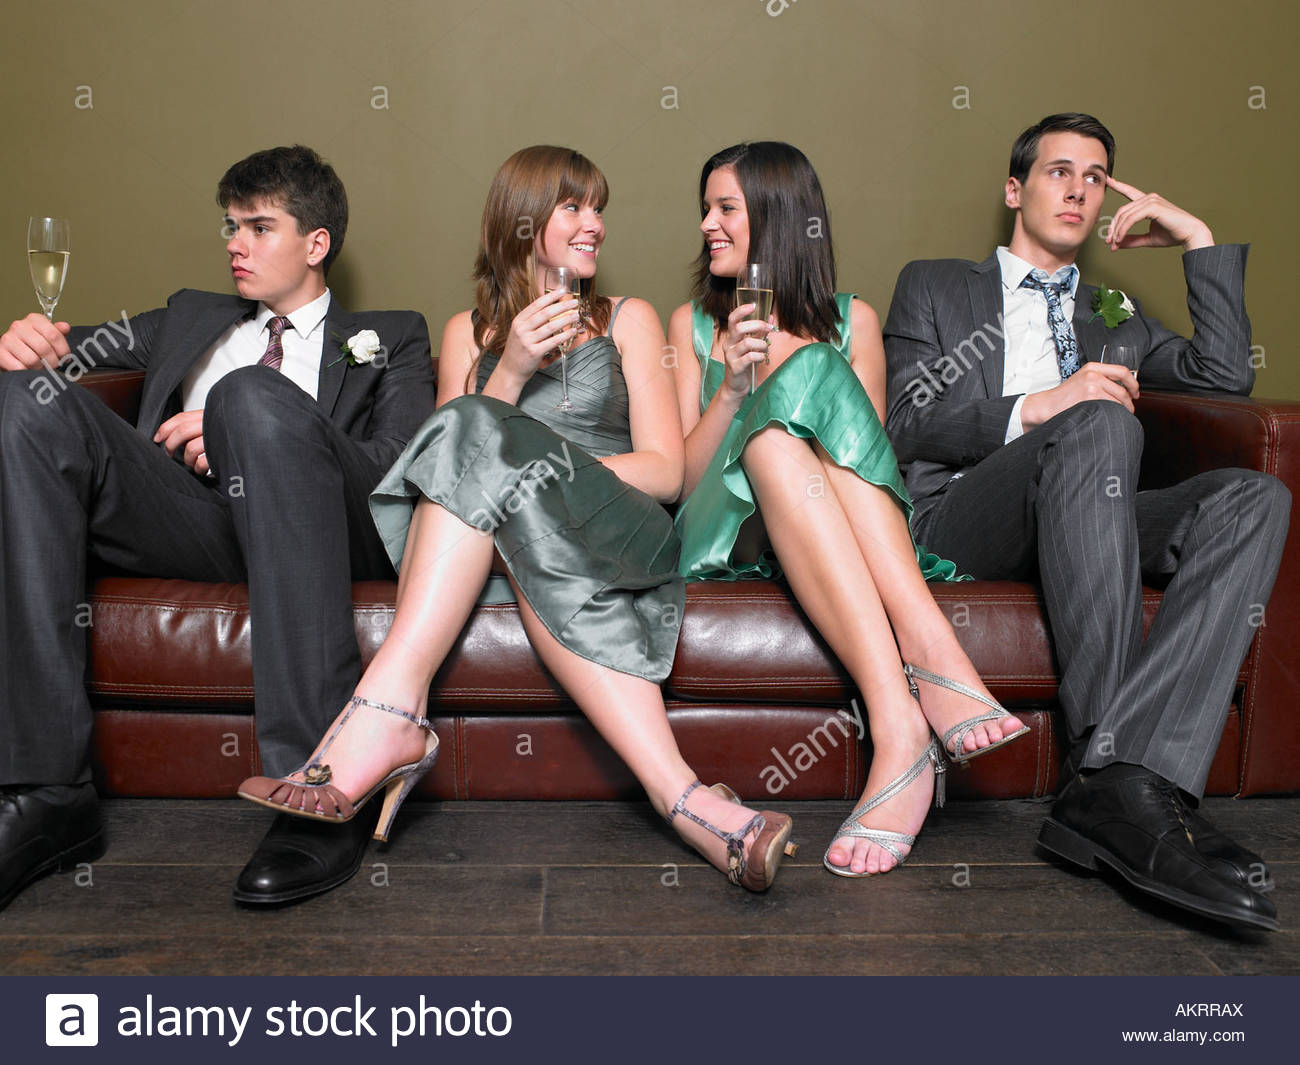 Male guests looking bored as female guests chat - Stock Image